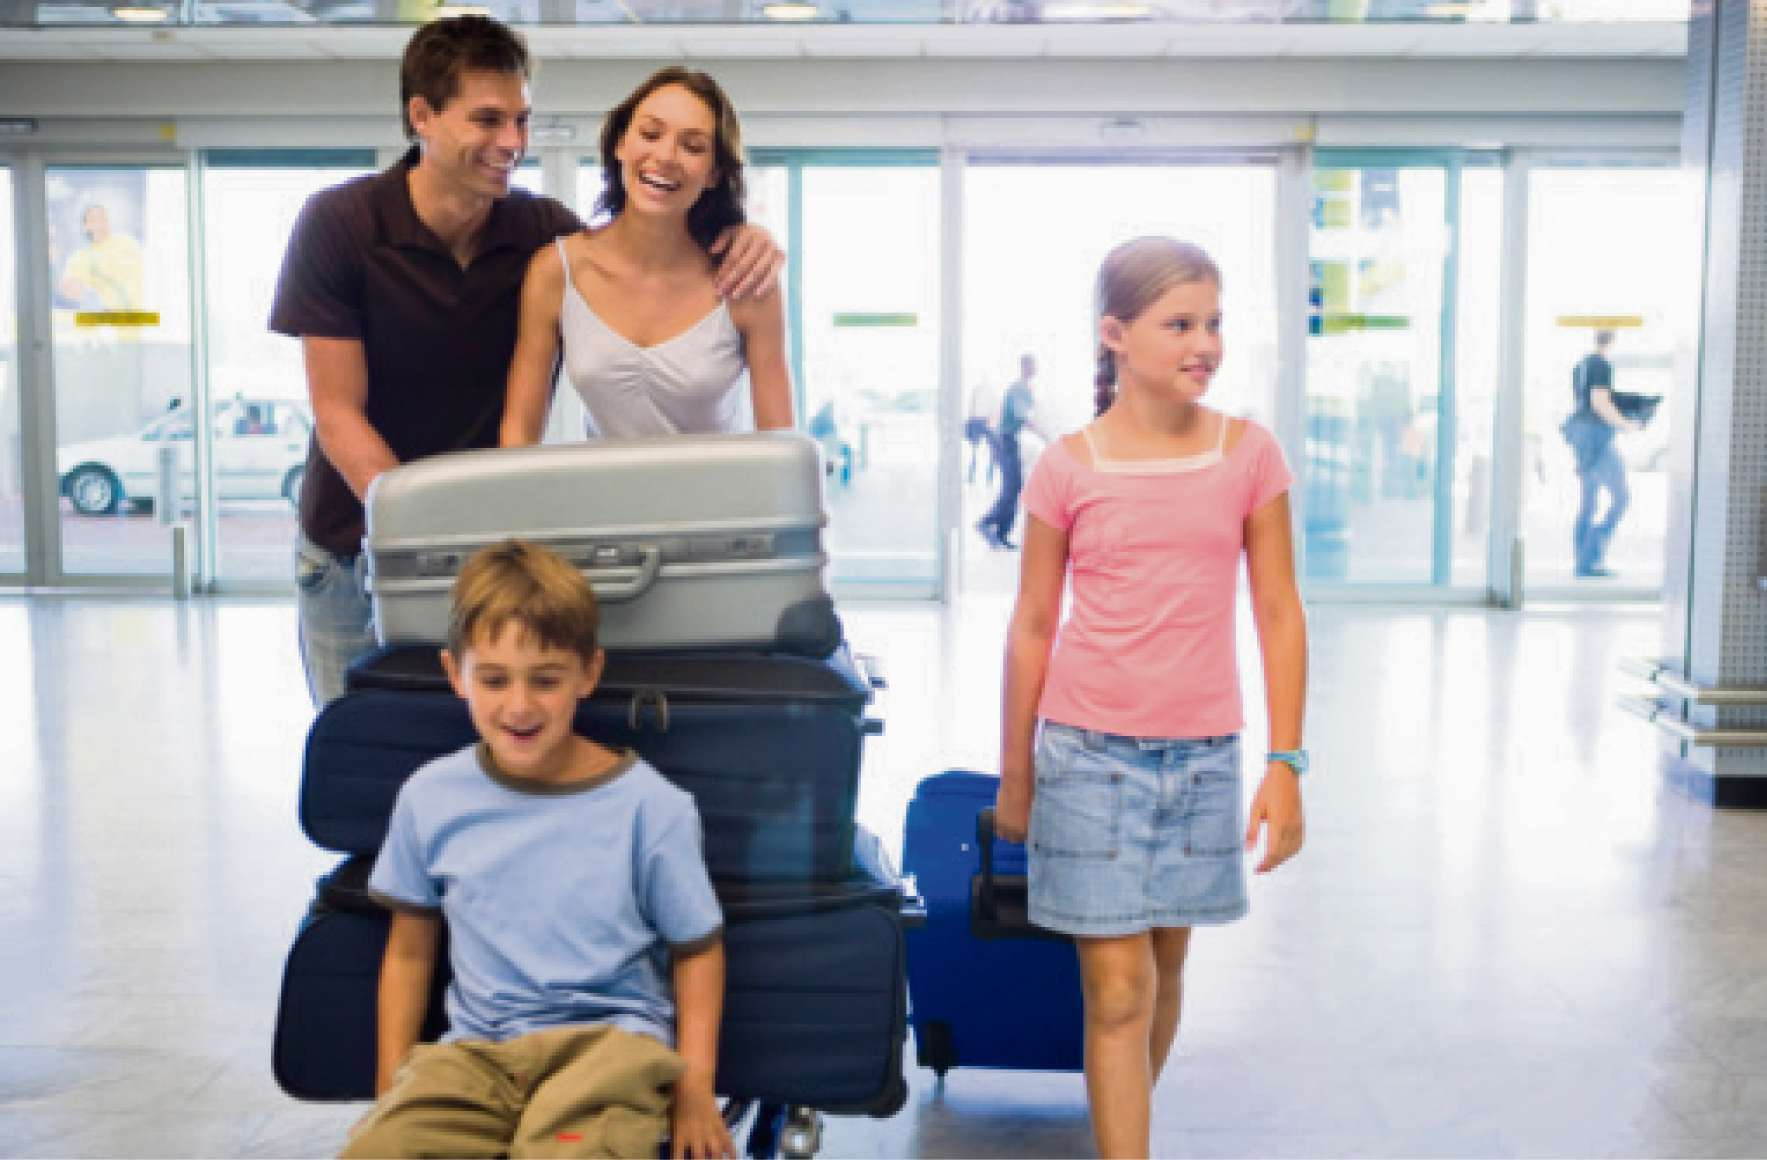 Family with cart of luggage in airport (6052272)